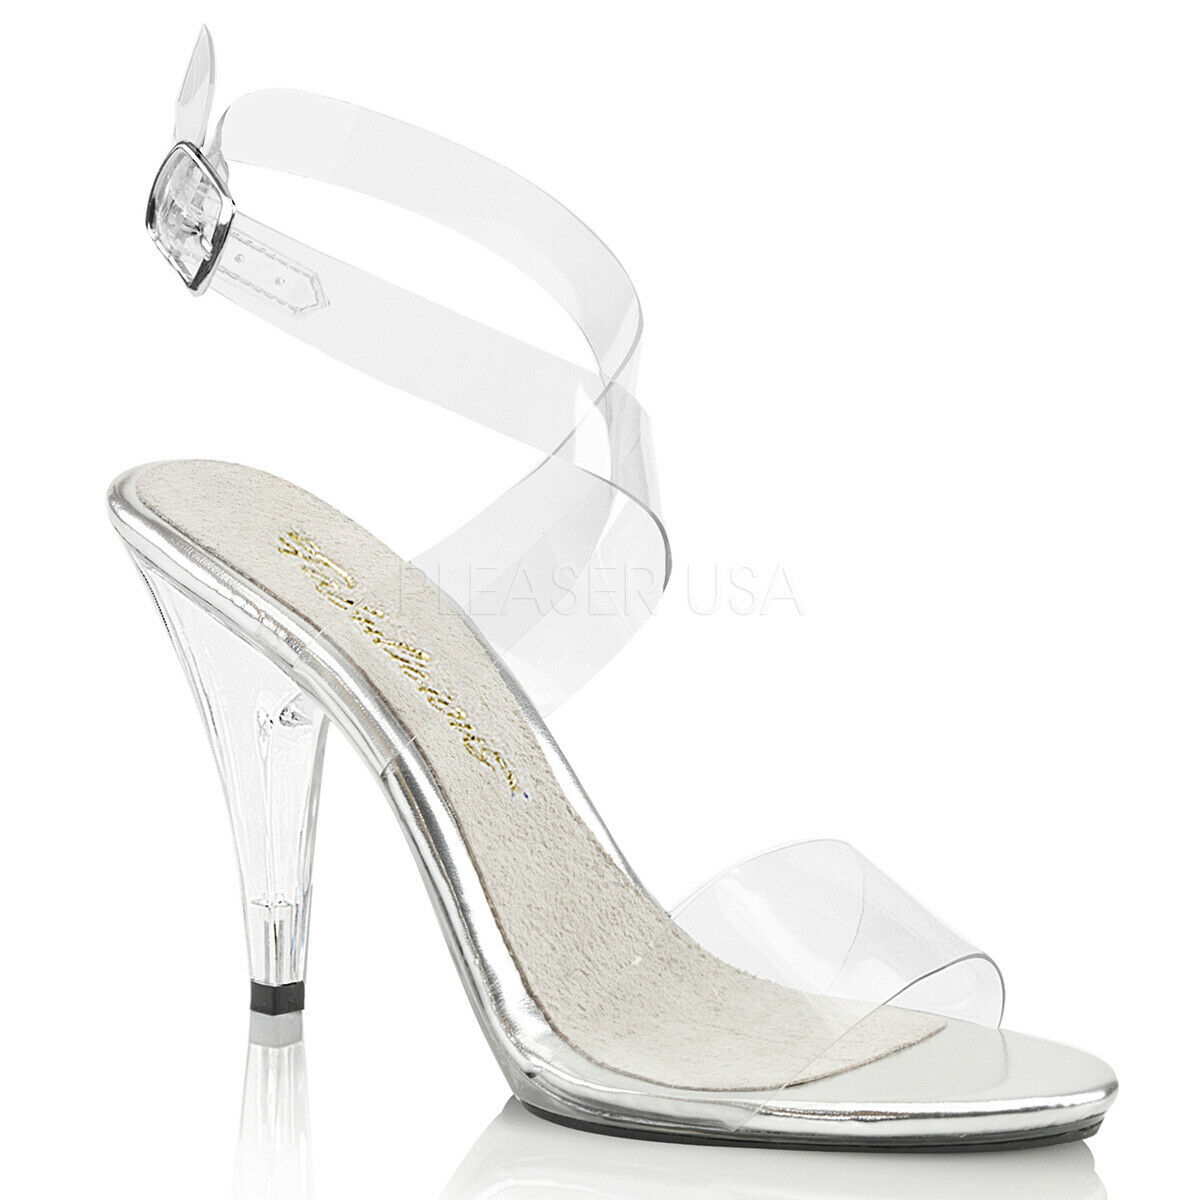 Fabulicious Fabulicious Fabulicious By Pleaser Caress-412 Clear Mini Platform Wrap Around Sandal shoes 74aeff